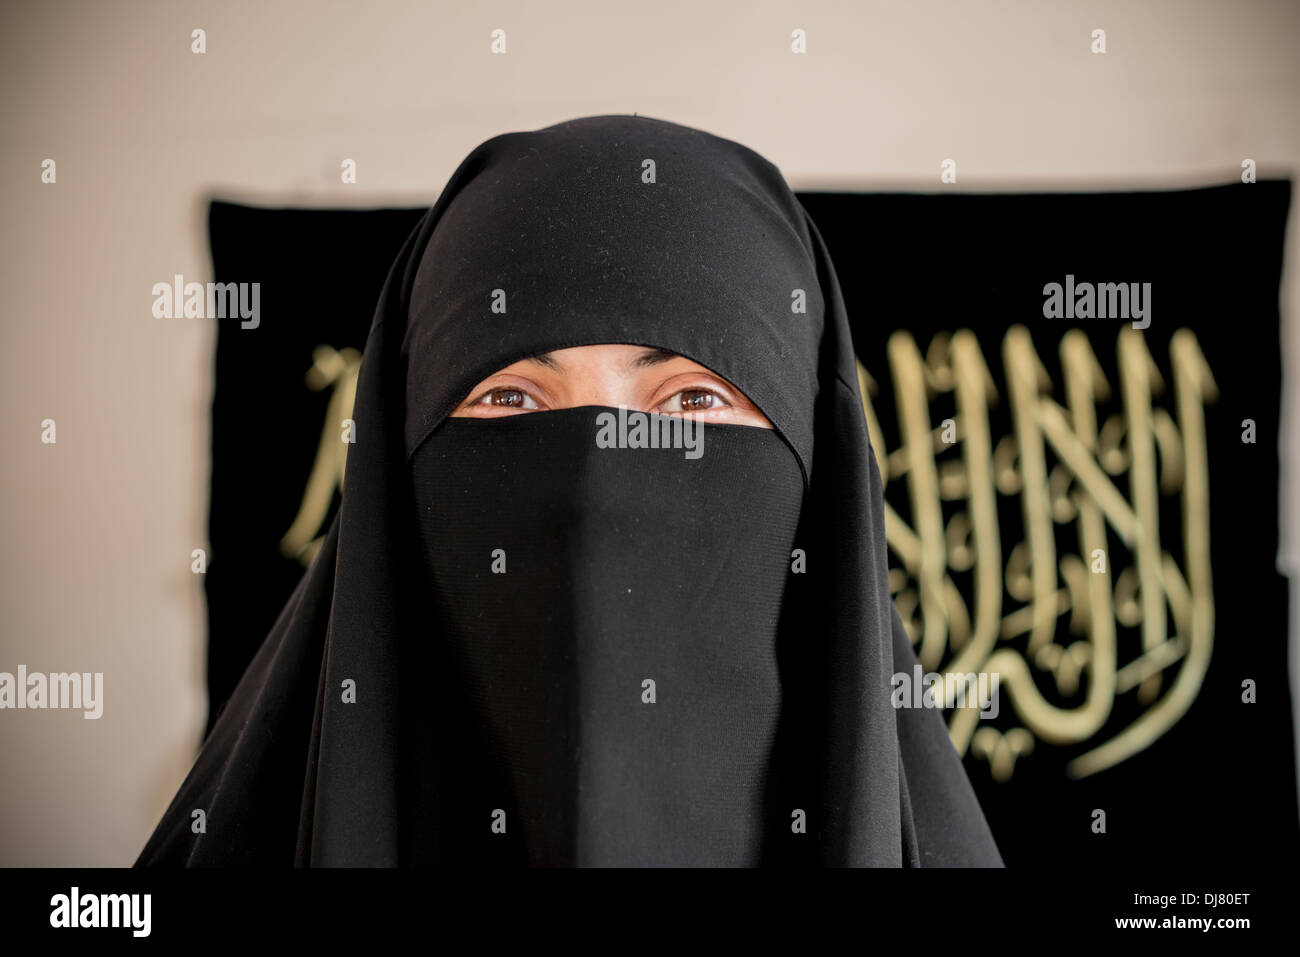 British Muslim Stock Photos and Images